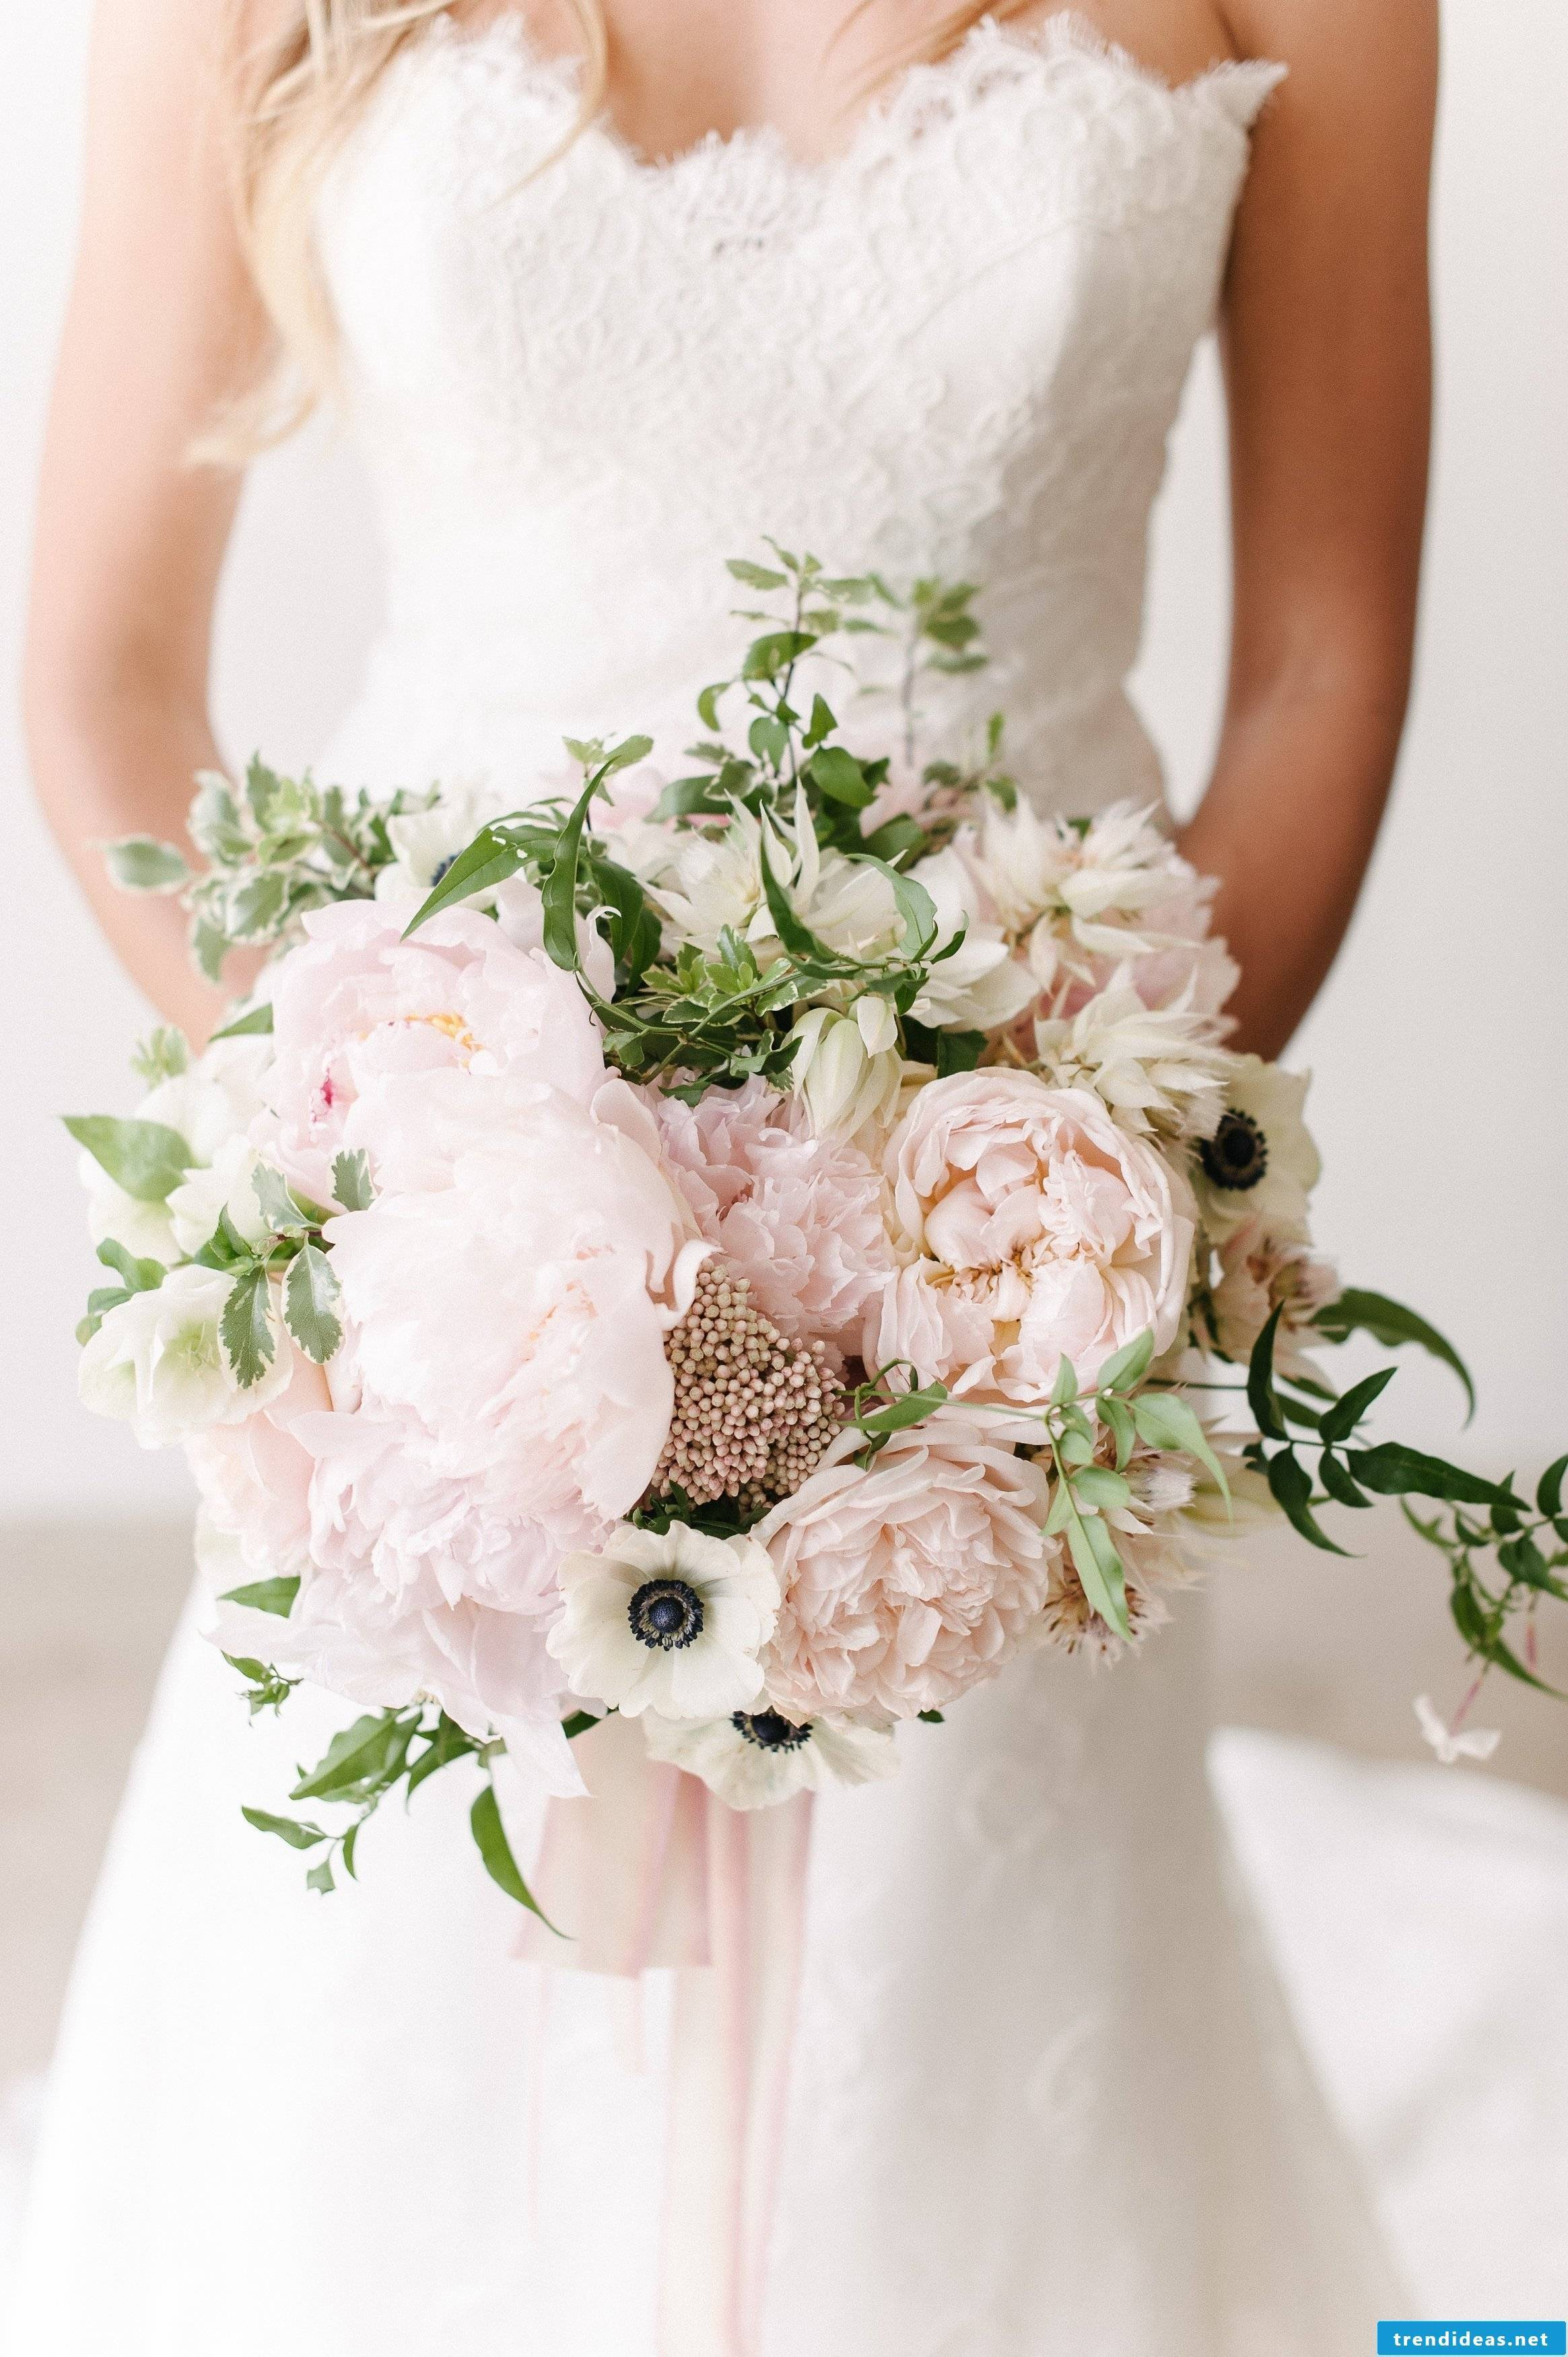 Trend 2018: In wedding decoration the pastel colors play a decisive role